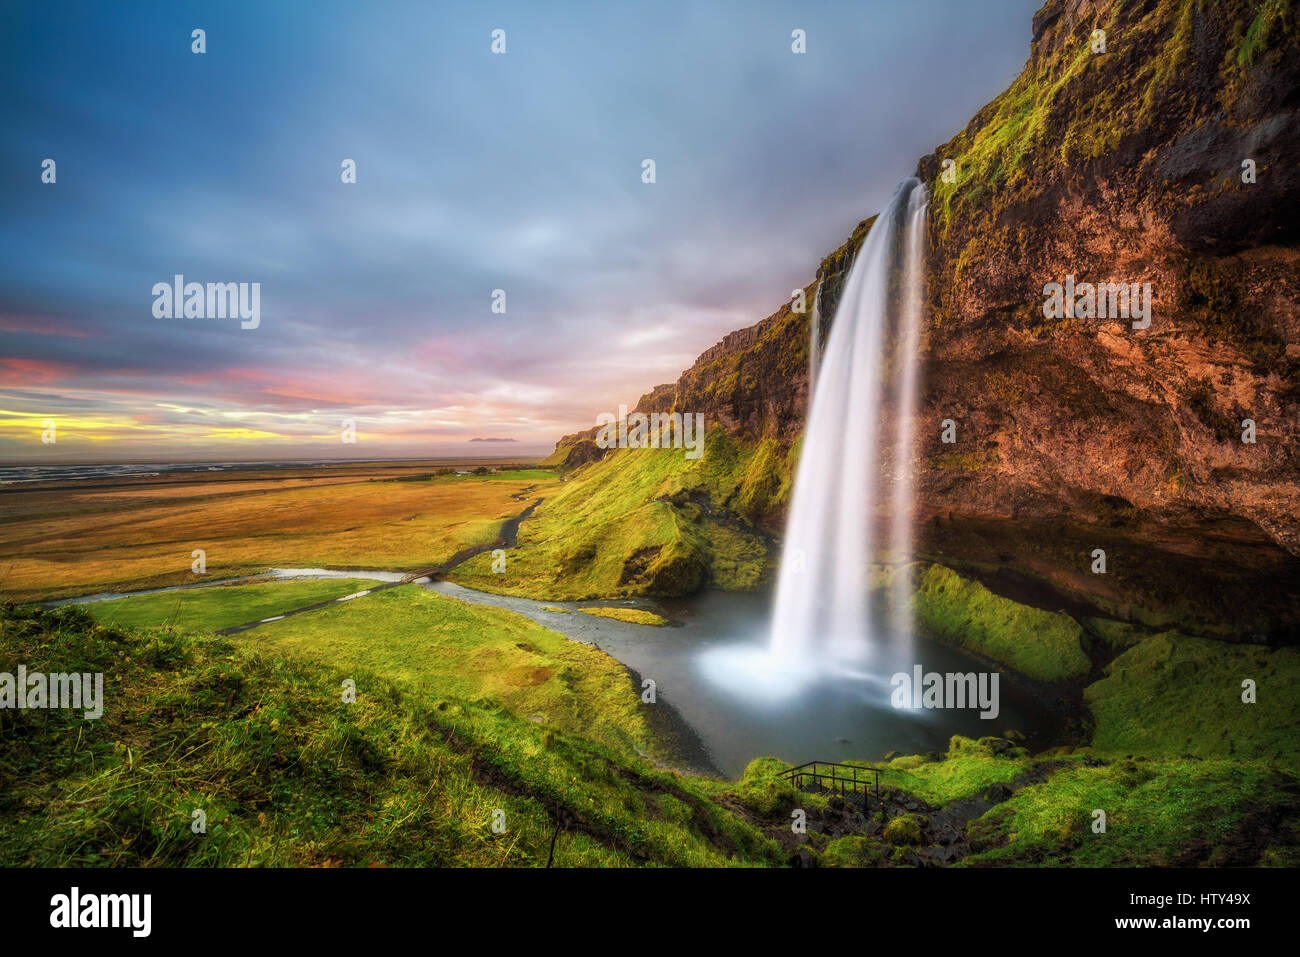 Seljalandsfoss Waterfall  in Iceland at sunset. Long exposure. - Stock Image